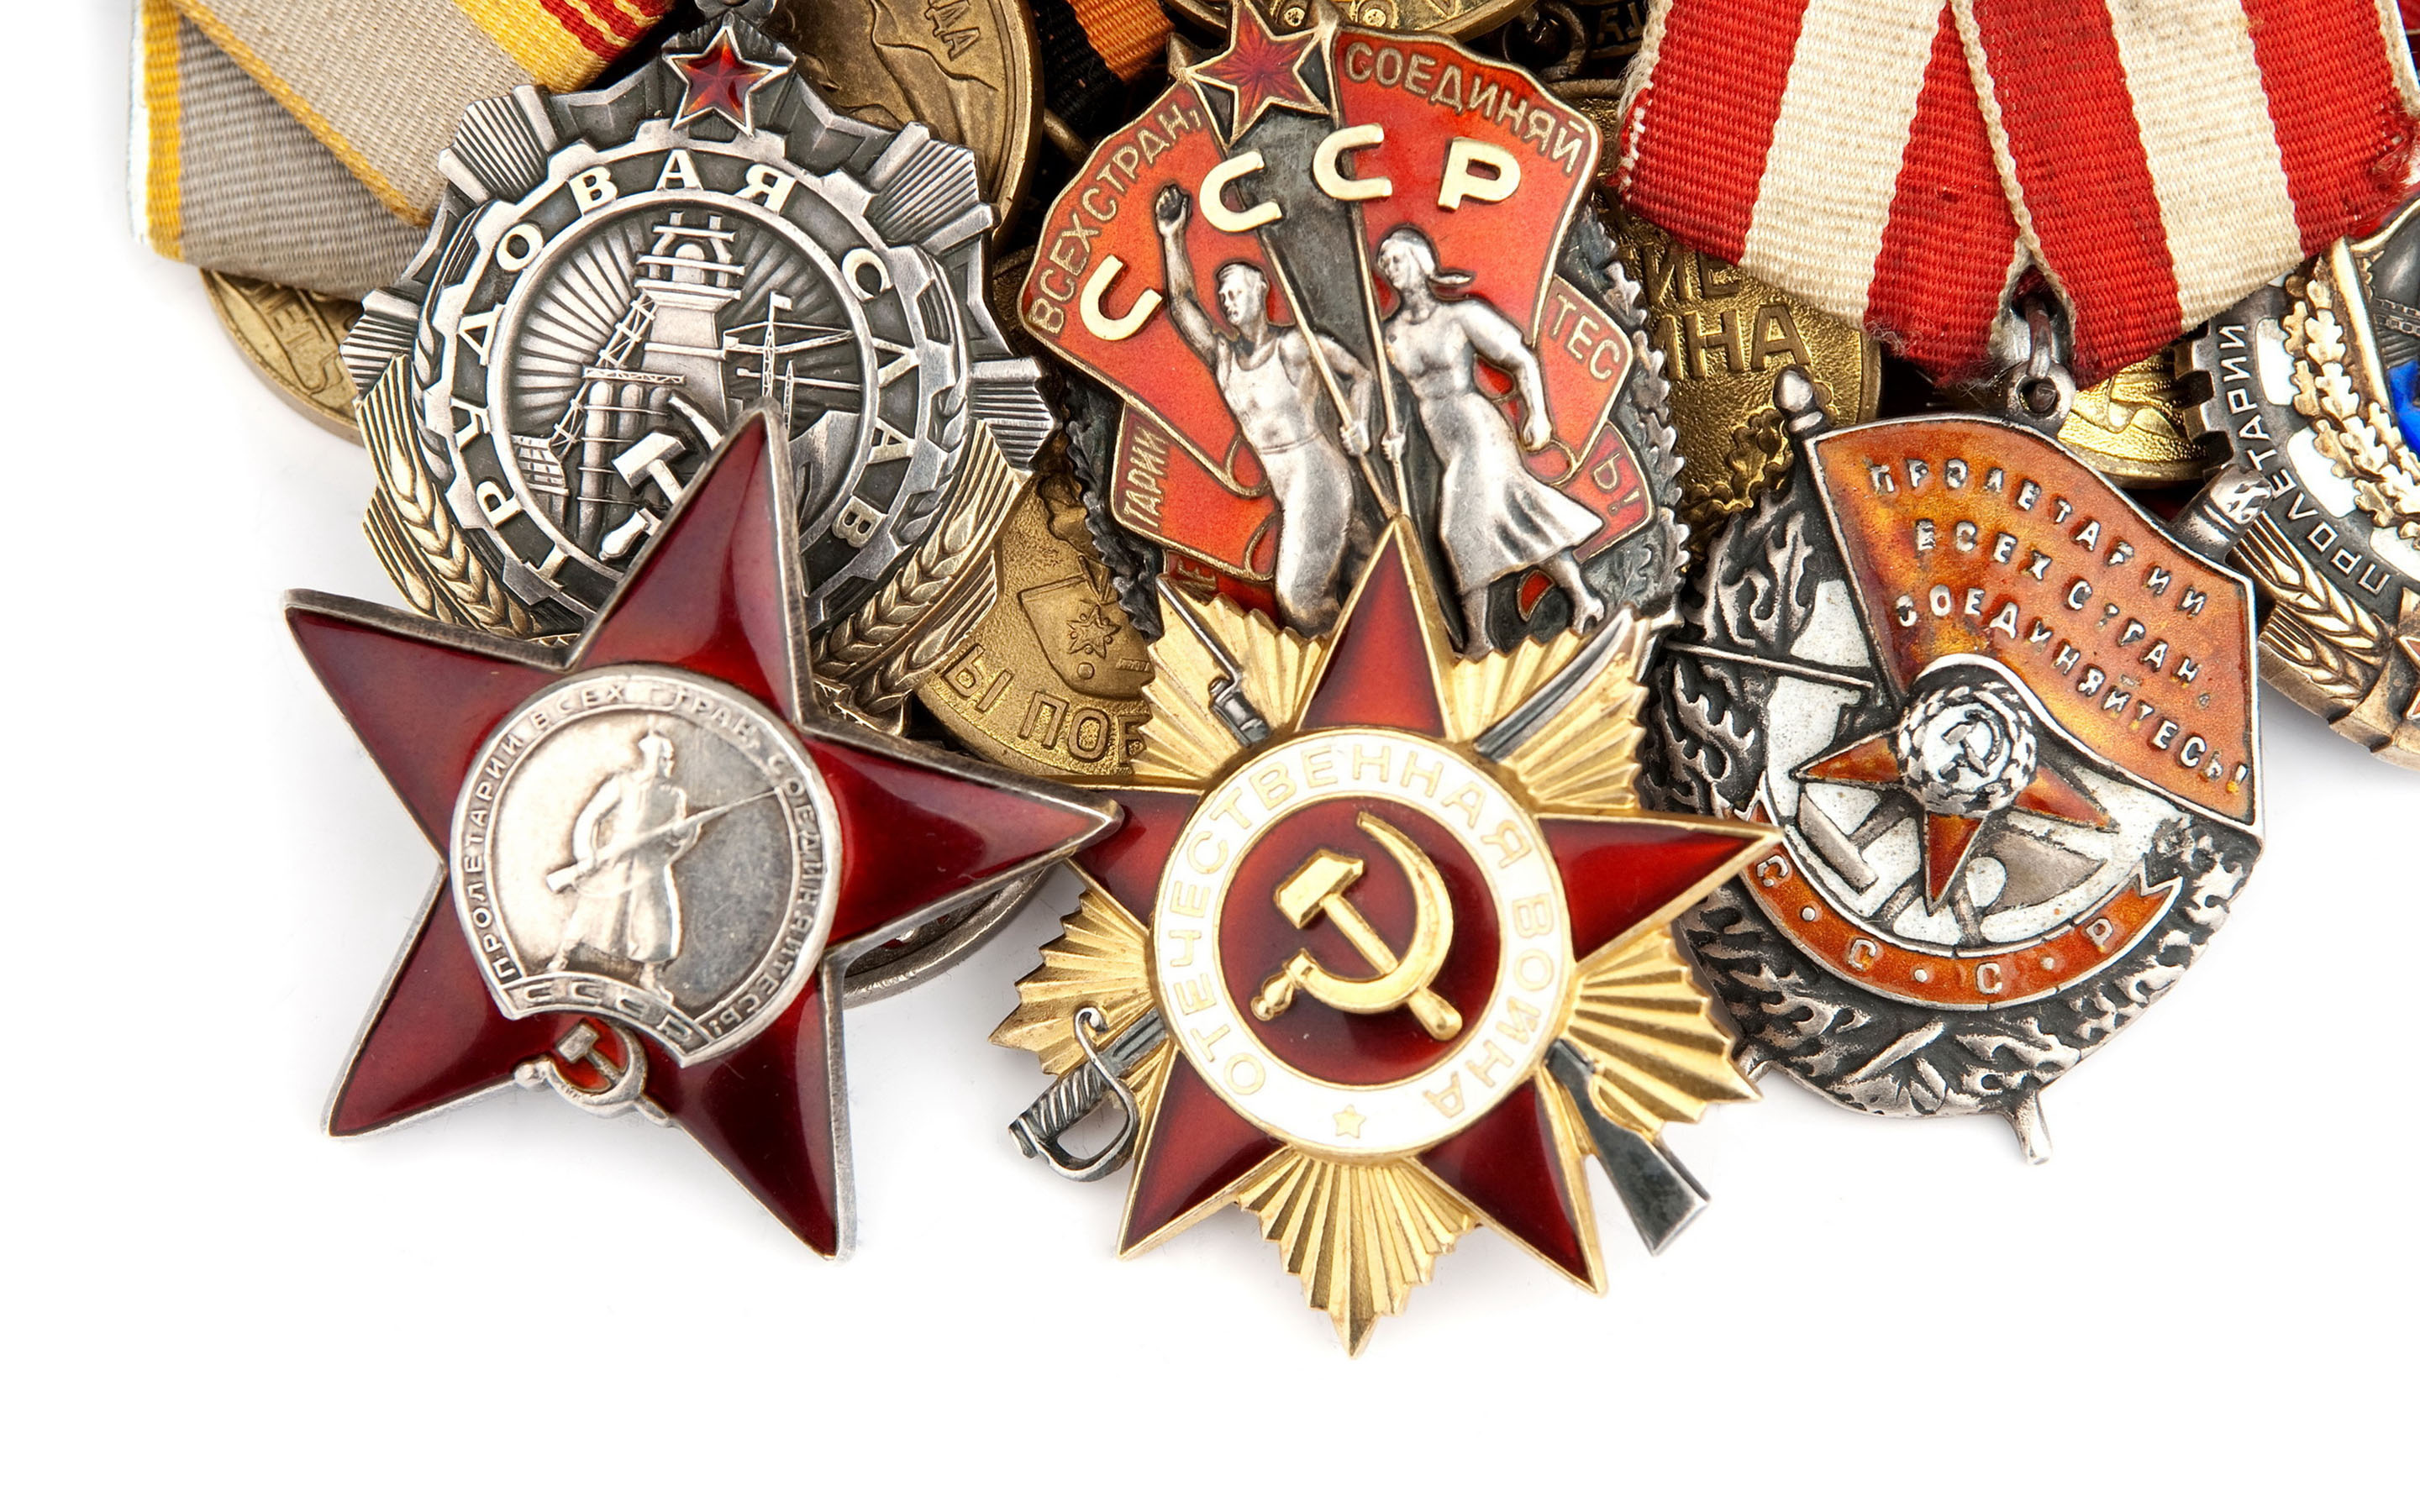 Wallpaper Victory Day Russia Holidays Hd Celebrations: Victory Day (9 May) HD Wallpaper